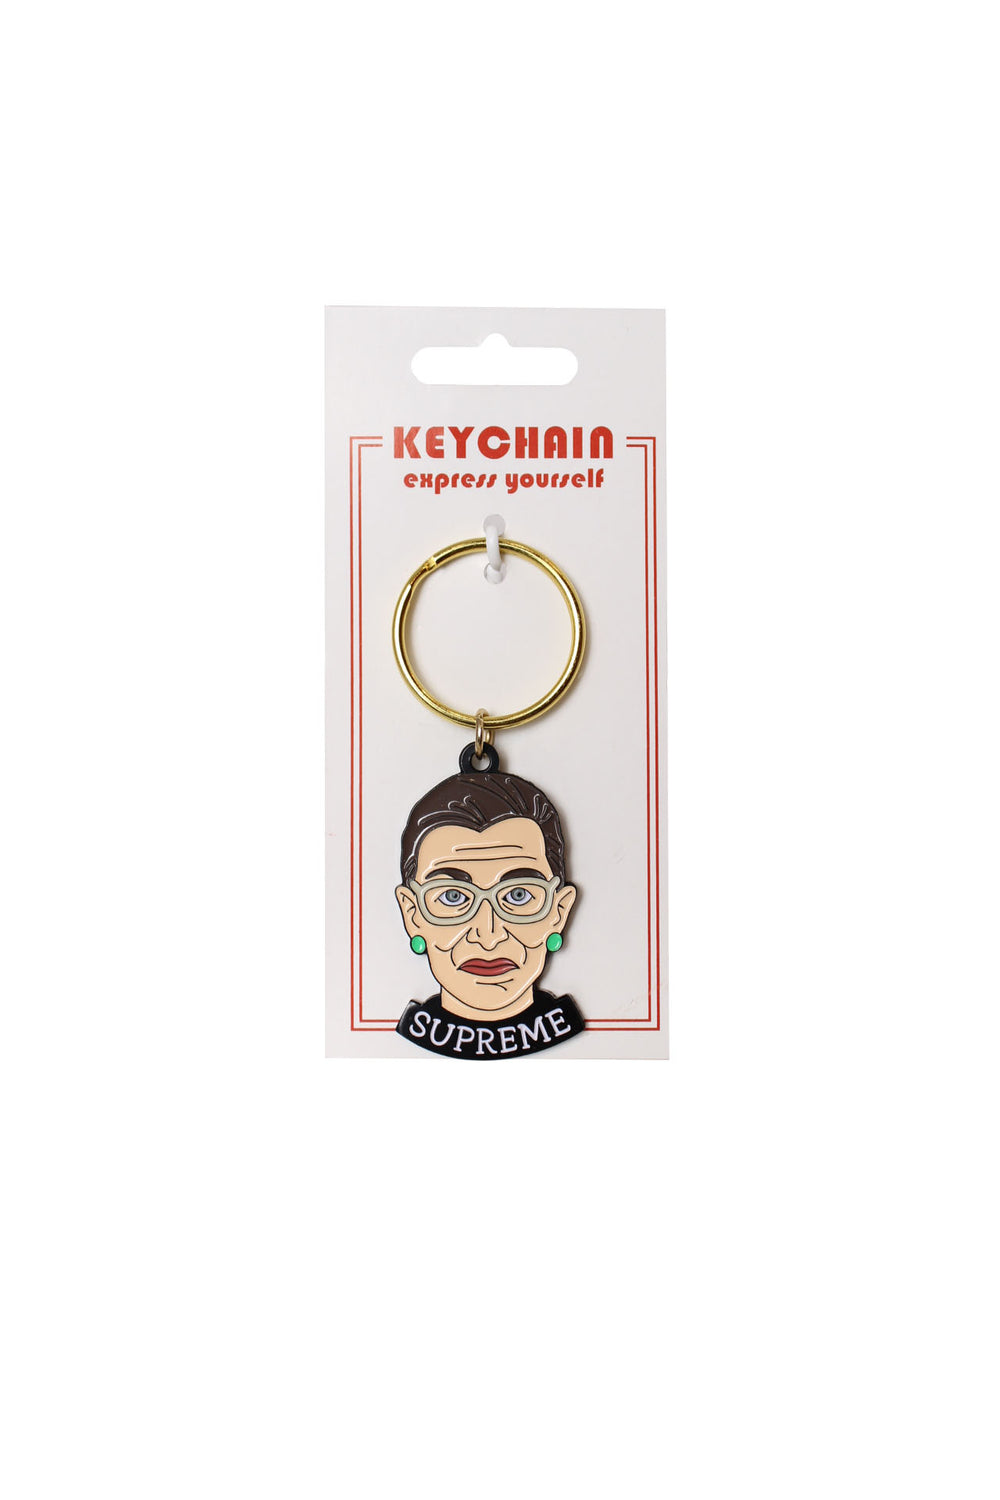 ruth bader ginsburg keychain by the found.